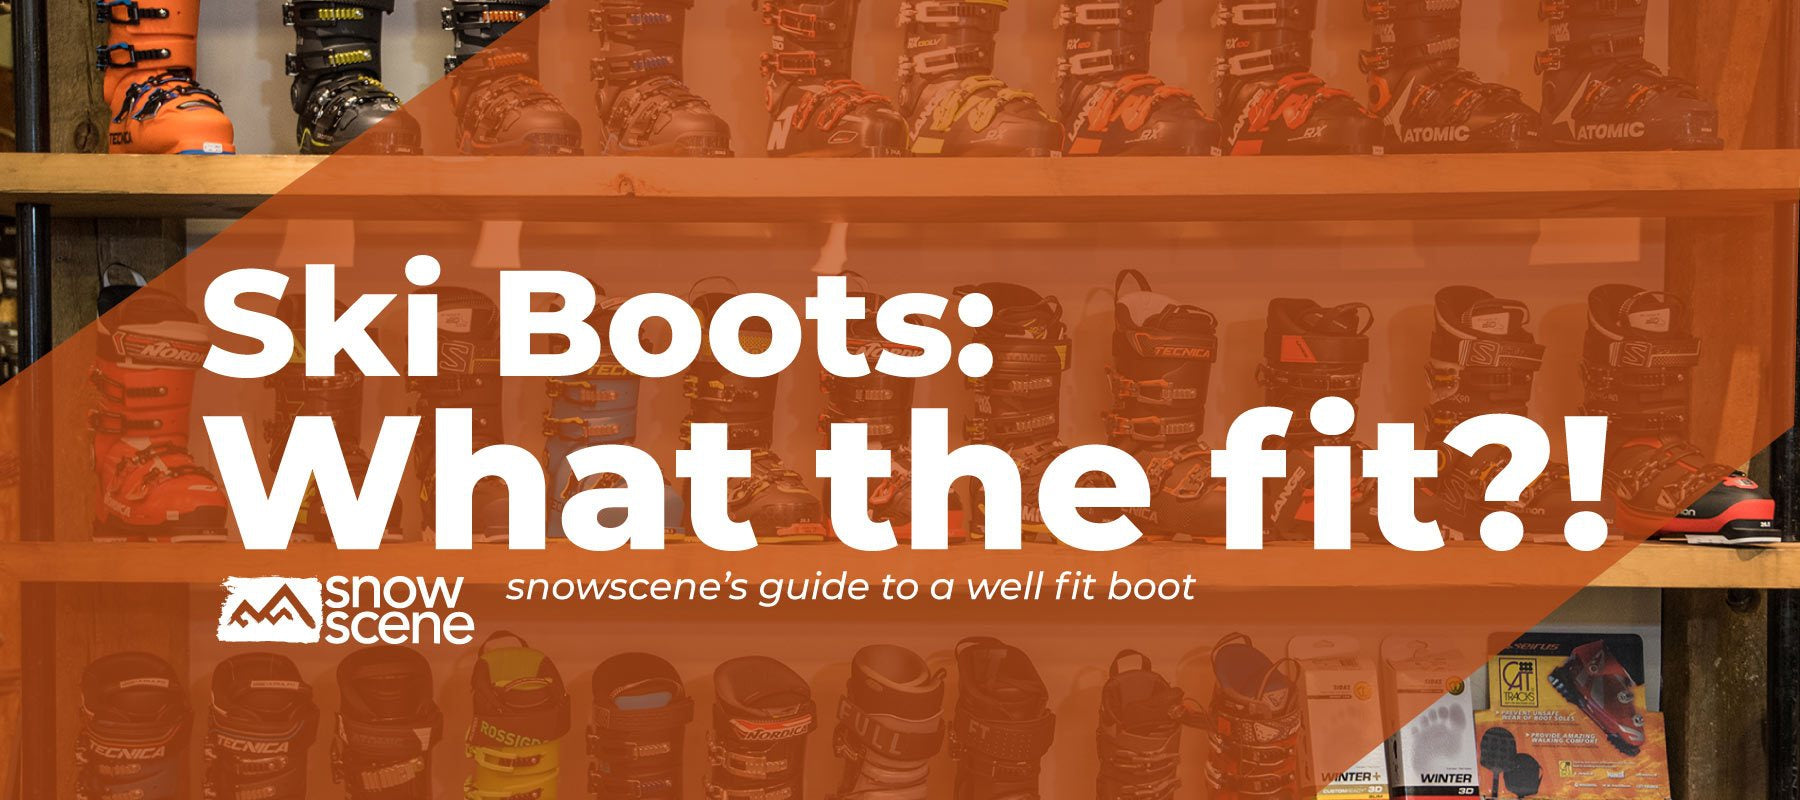 Ski Boots: What the fit! (Boot fitting tips and guide)-snowscene ski and board